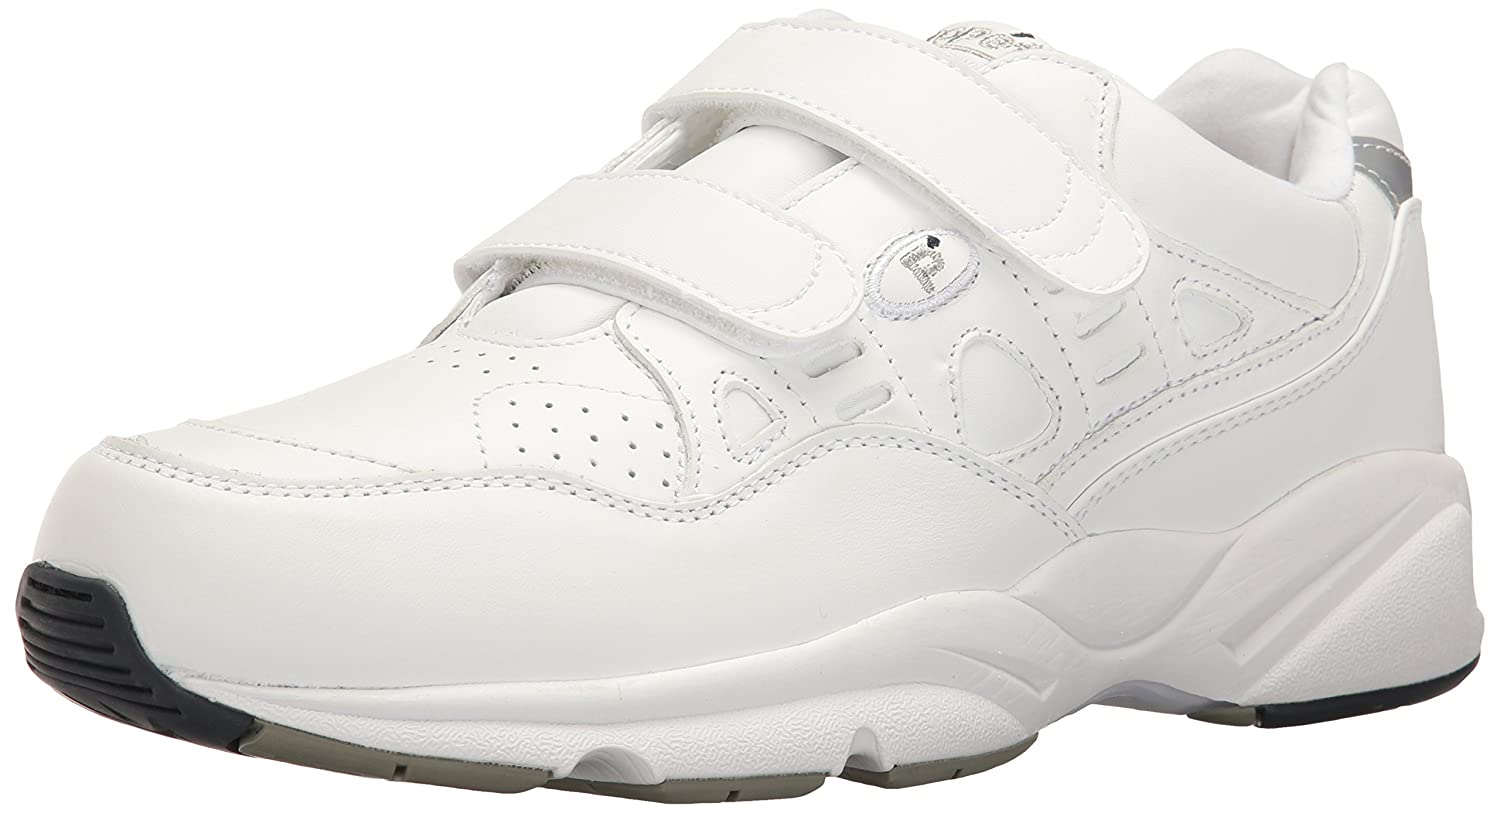 Propet Women's Stability Walker Strap Walking Shoe B000P4JW28 7.5 N US|White